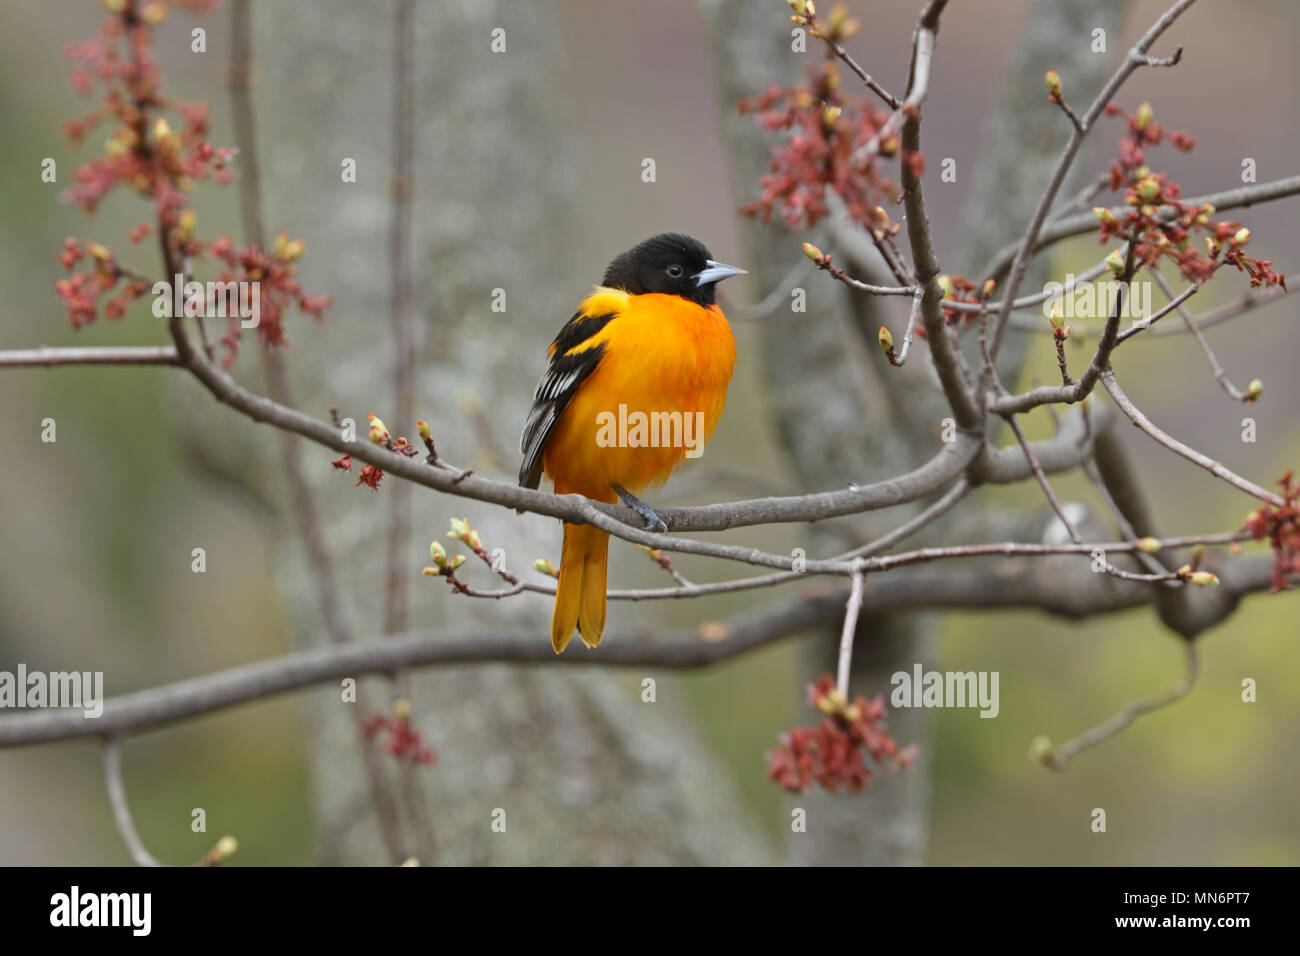 A male Northern oriole (Icterus galbula) perched on a branch of a budding maple tree in spring Stock Photo